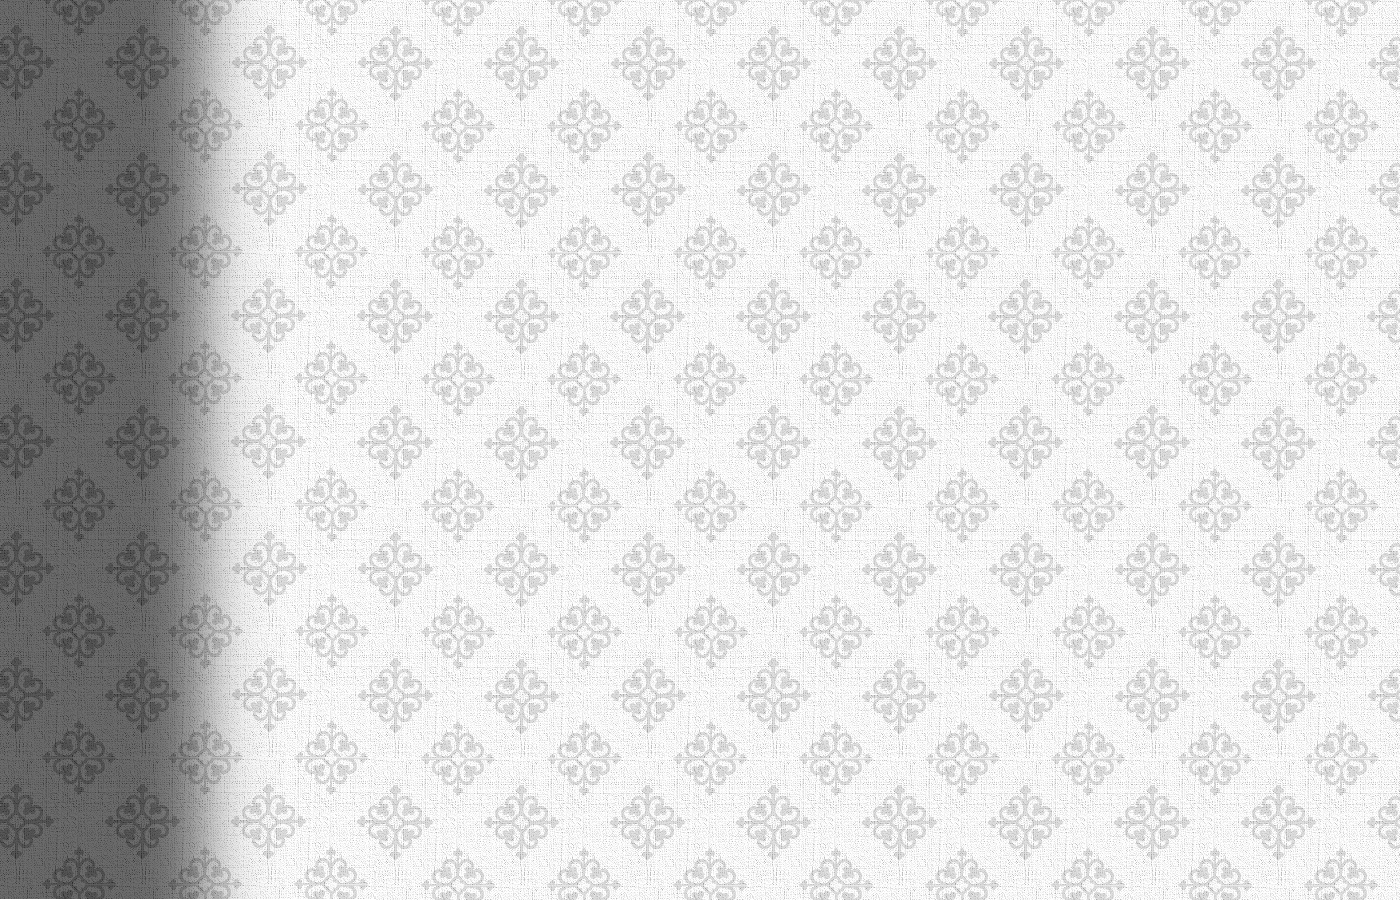 Clear White Background Pattern 609.08 Kb